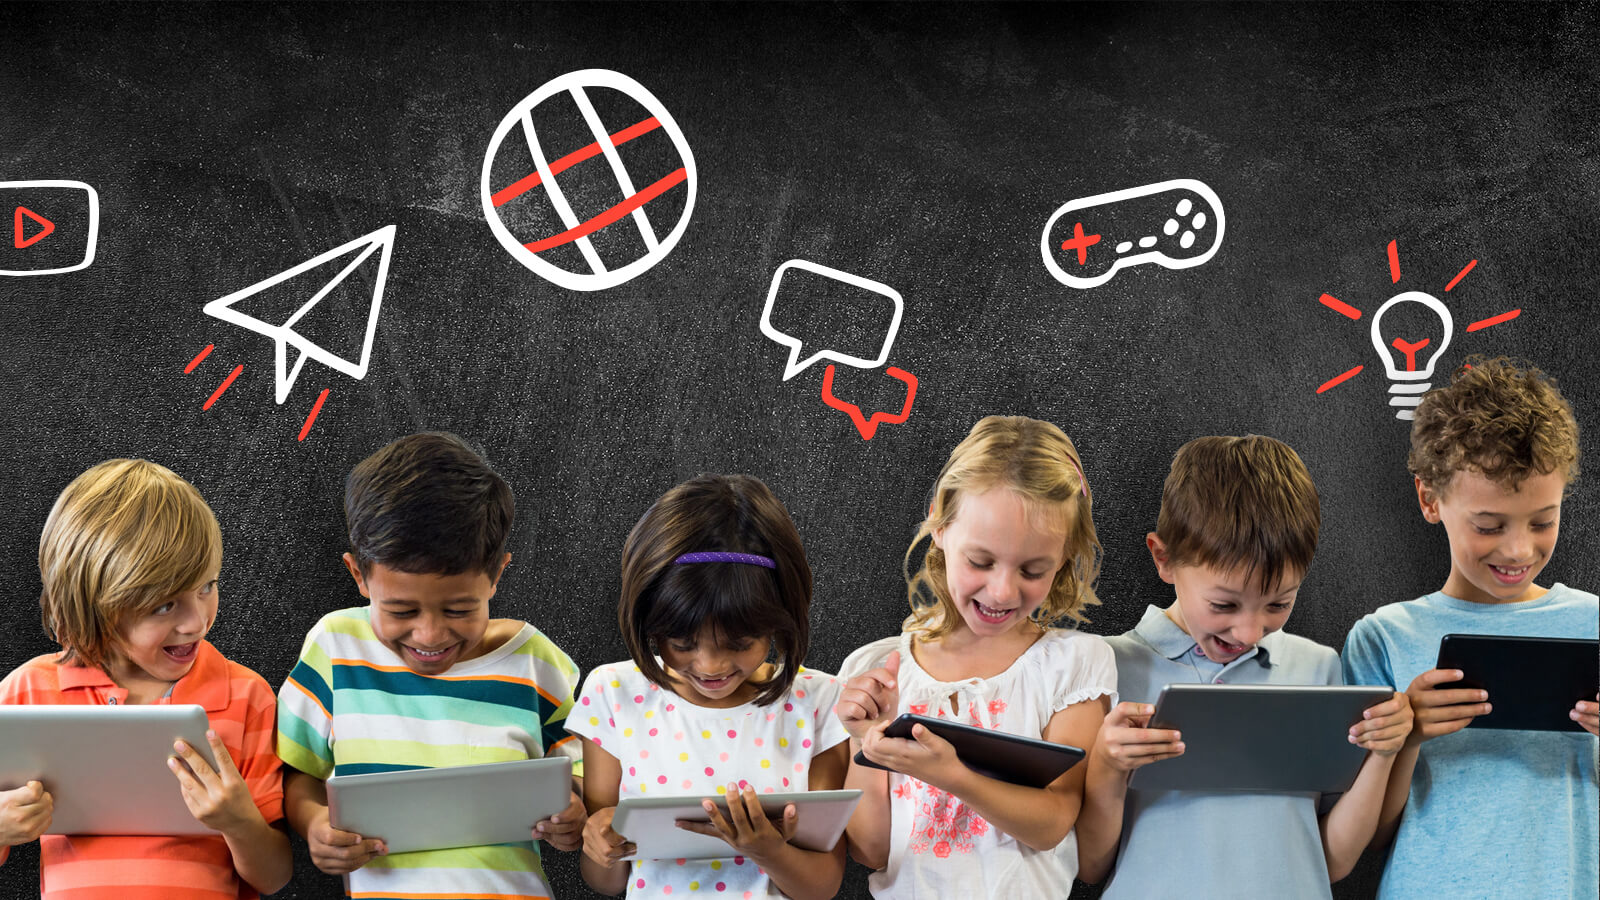 imcEDU hero image with children on devices and drawings